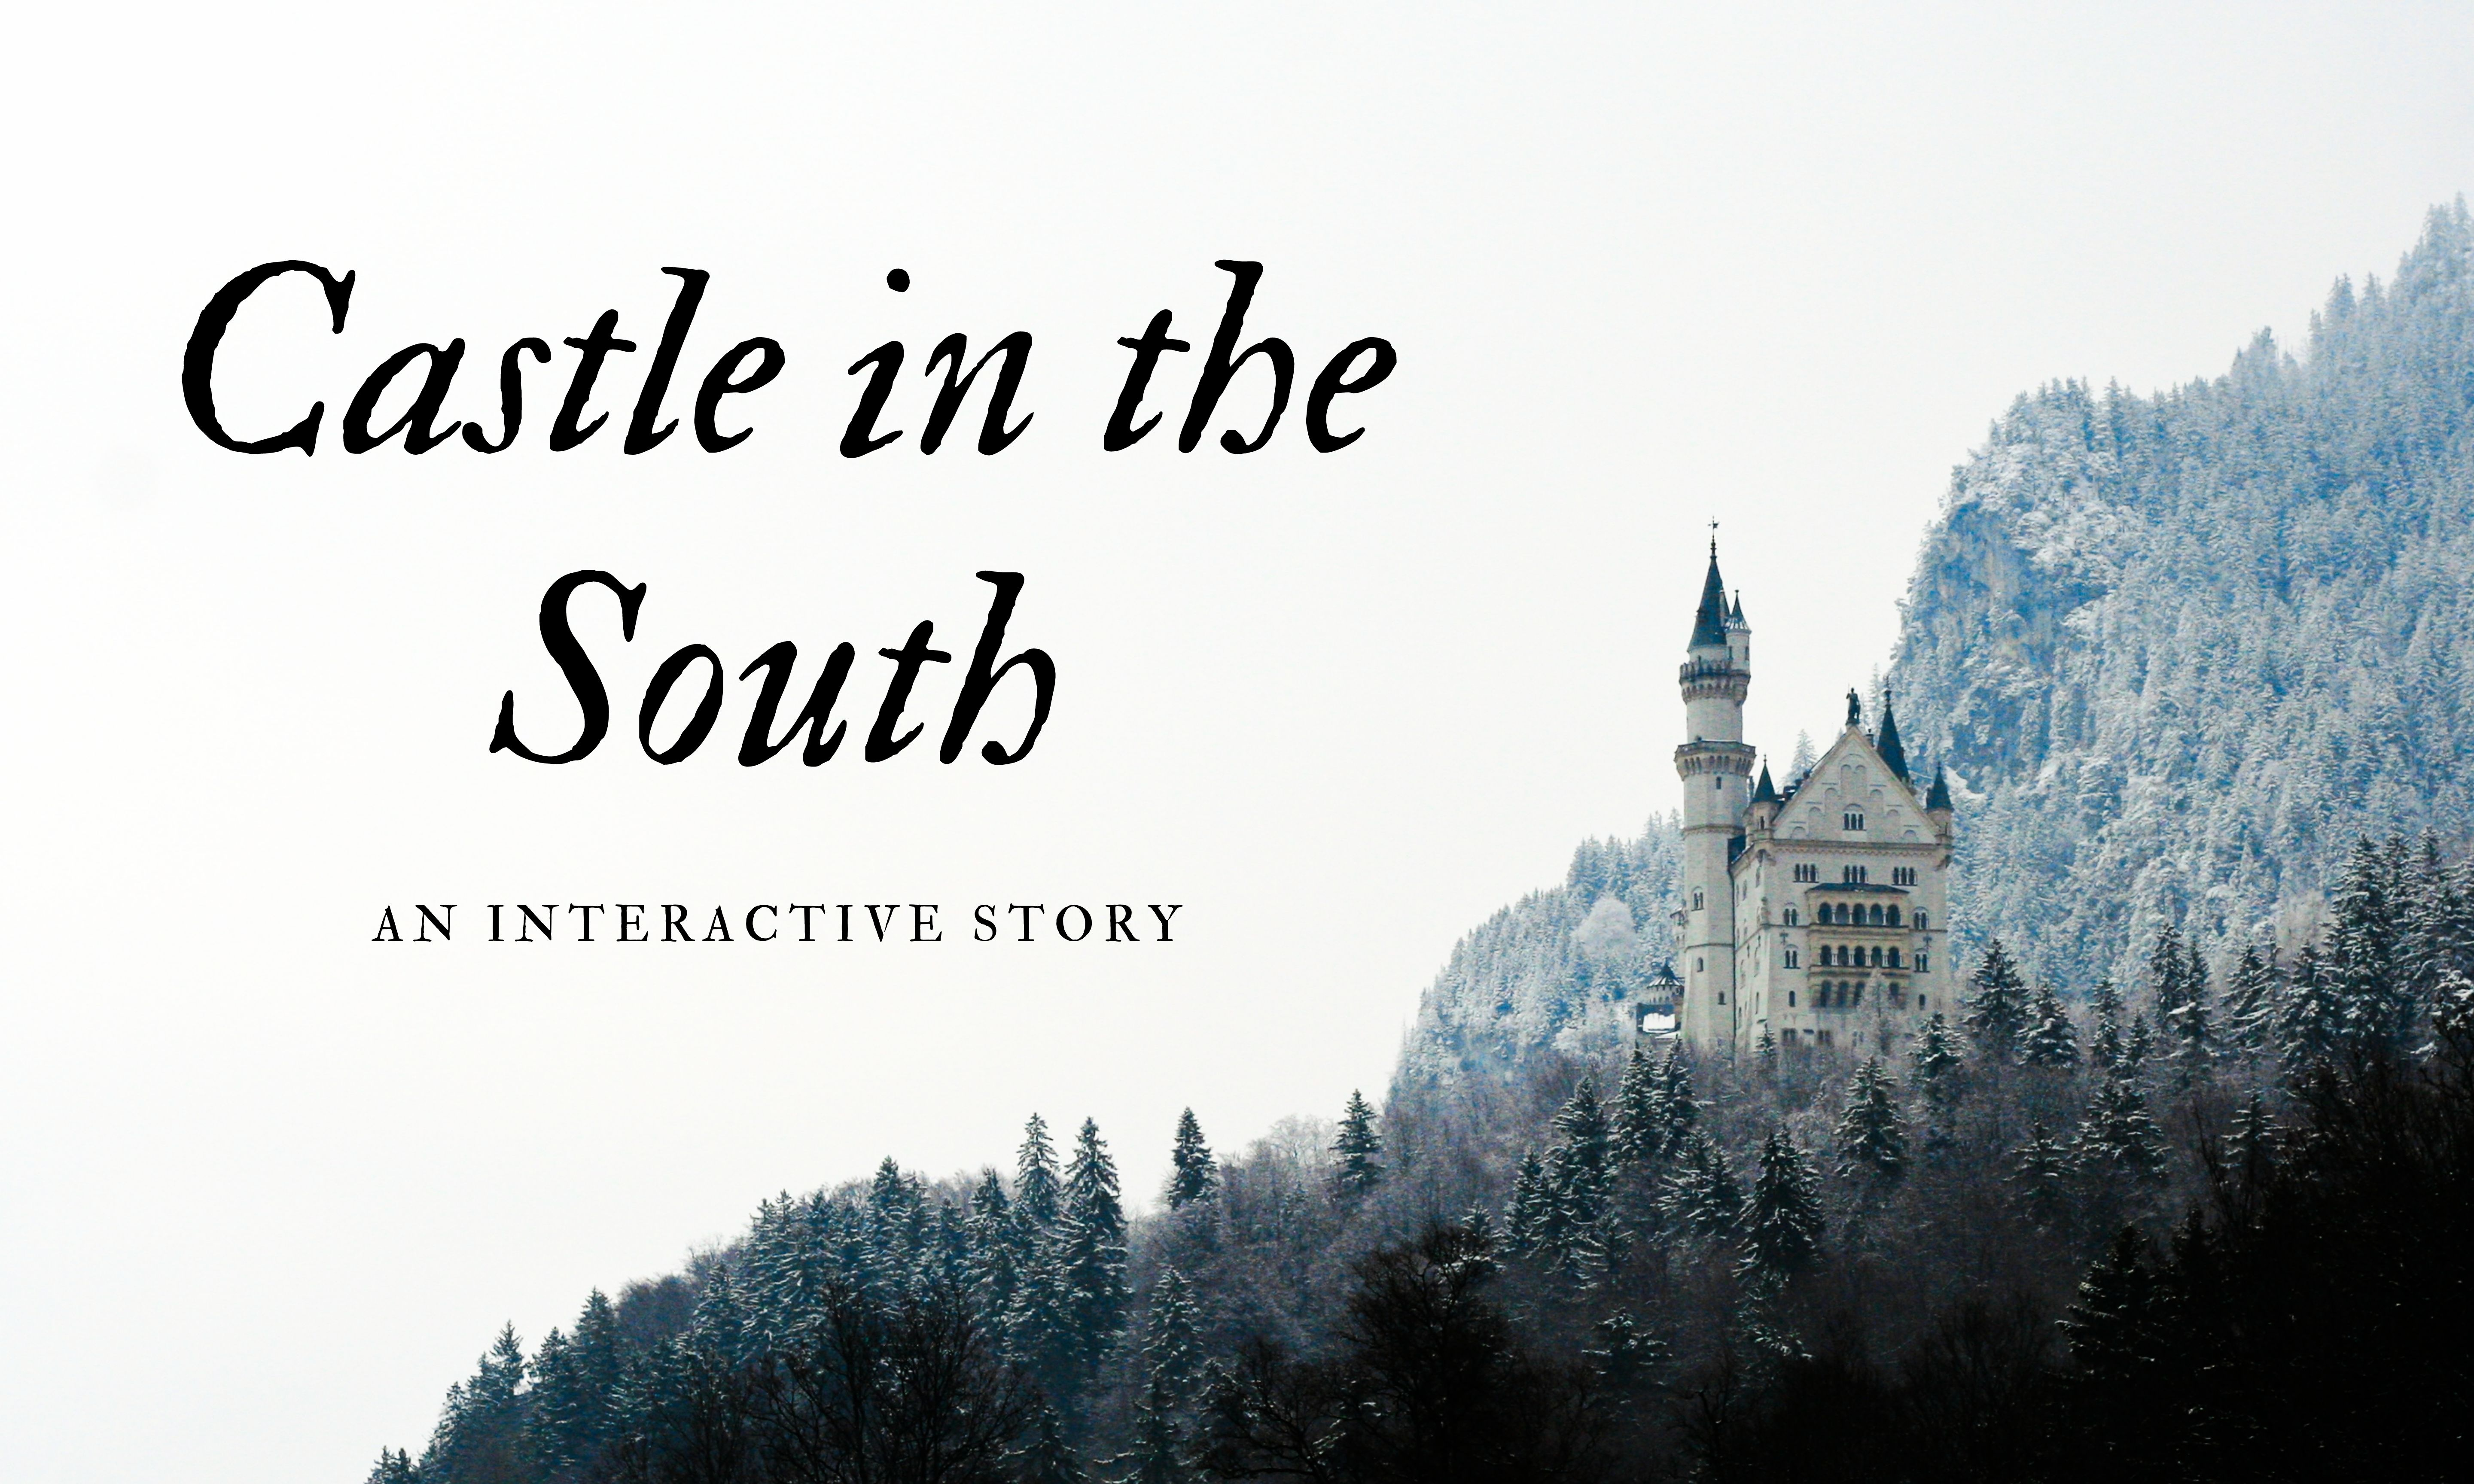 Castle in the South - An Interactive Story